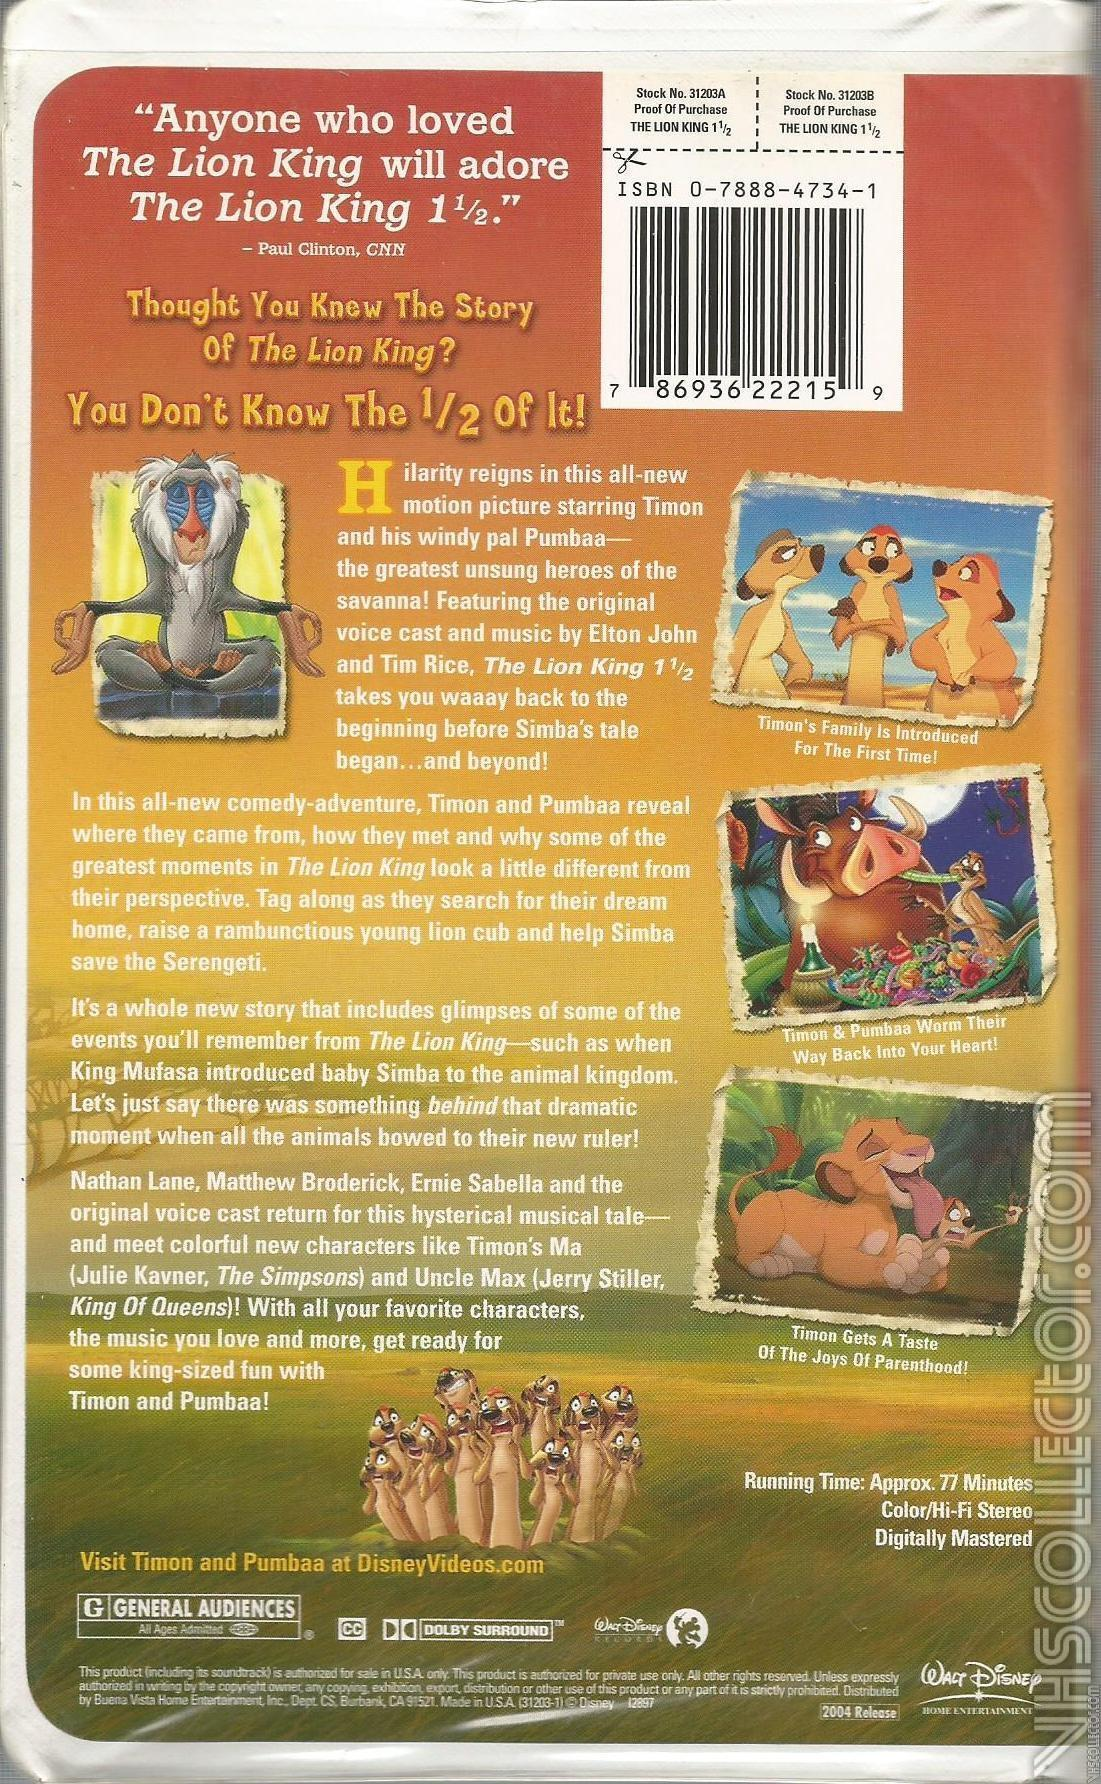 The Lion King 1 12 2004